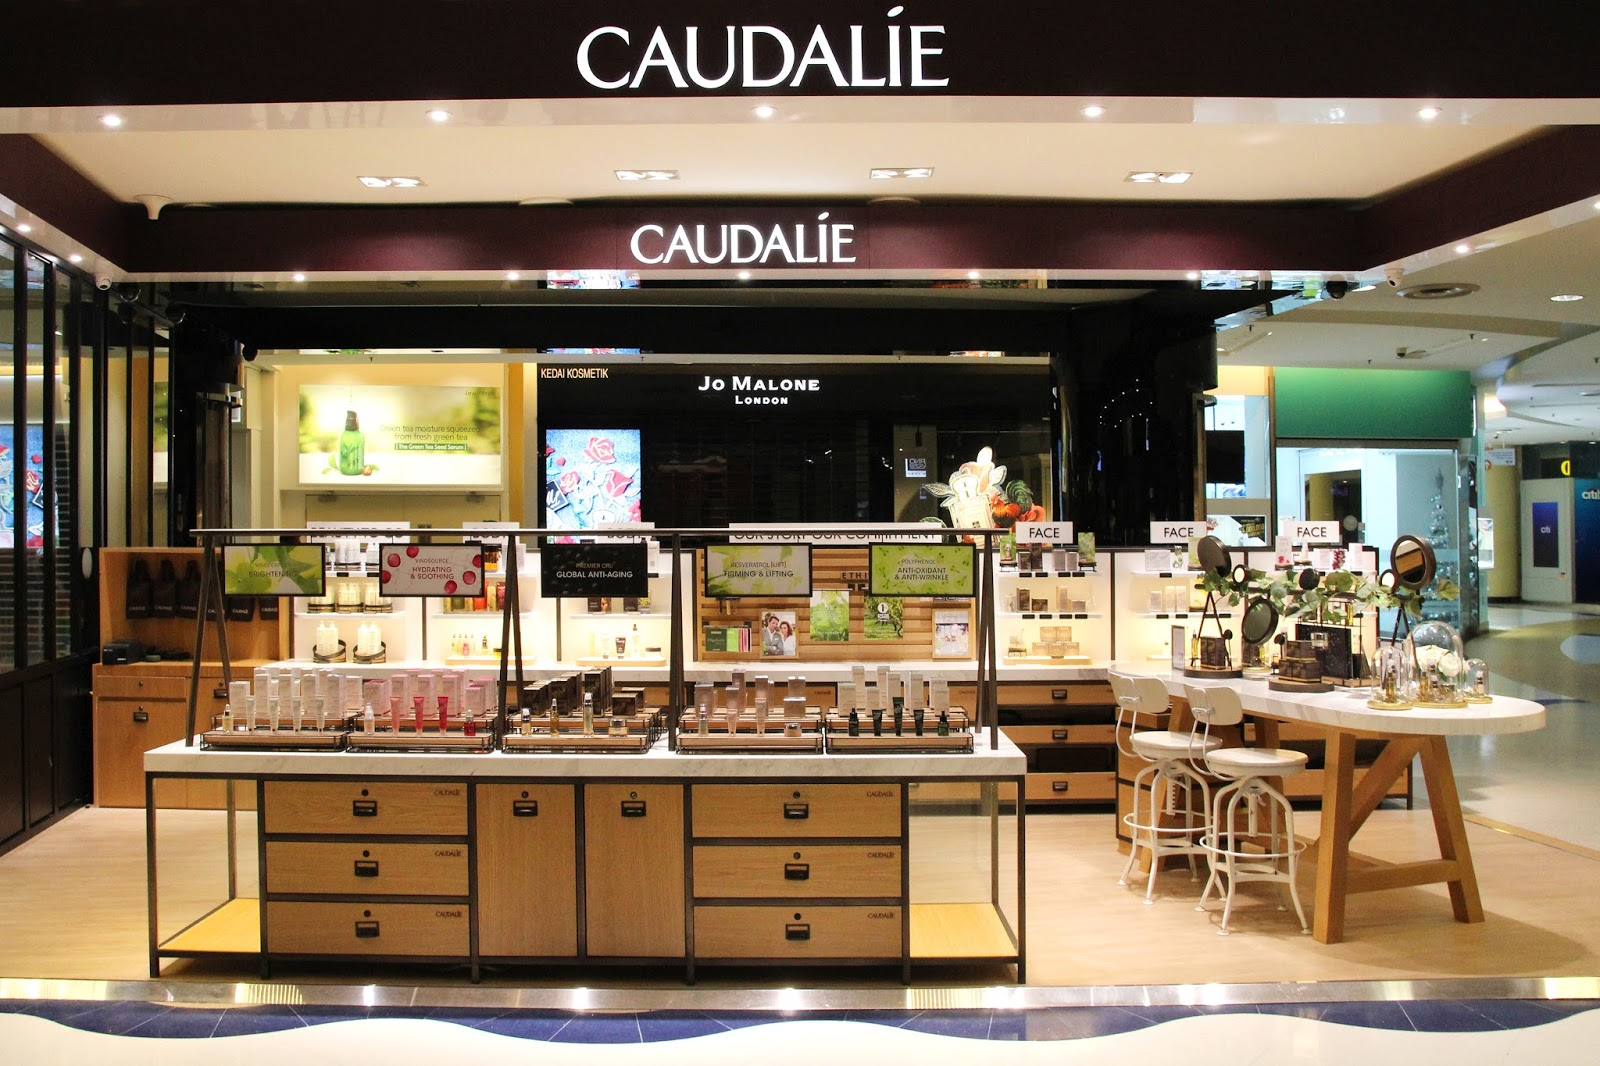 At this time, we are unable to accept allxpreswts.ml returns in our Caudalie Boutique Locations. Purchases made at retail locations or through another web site must be addressed by the original location of purchase. Please complete the Caudalie Return Form that was included in your package.